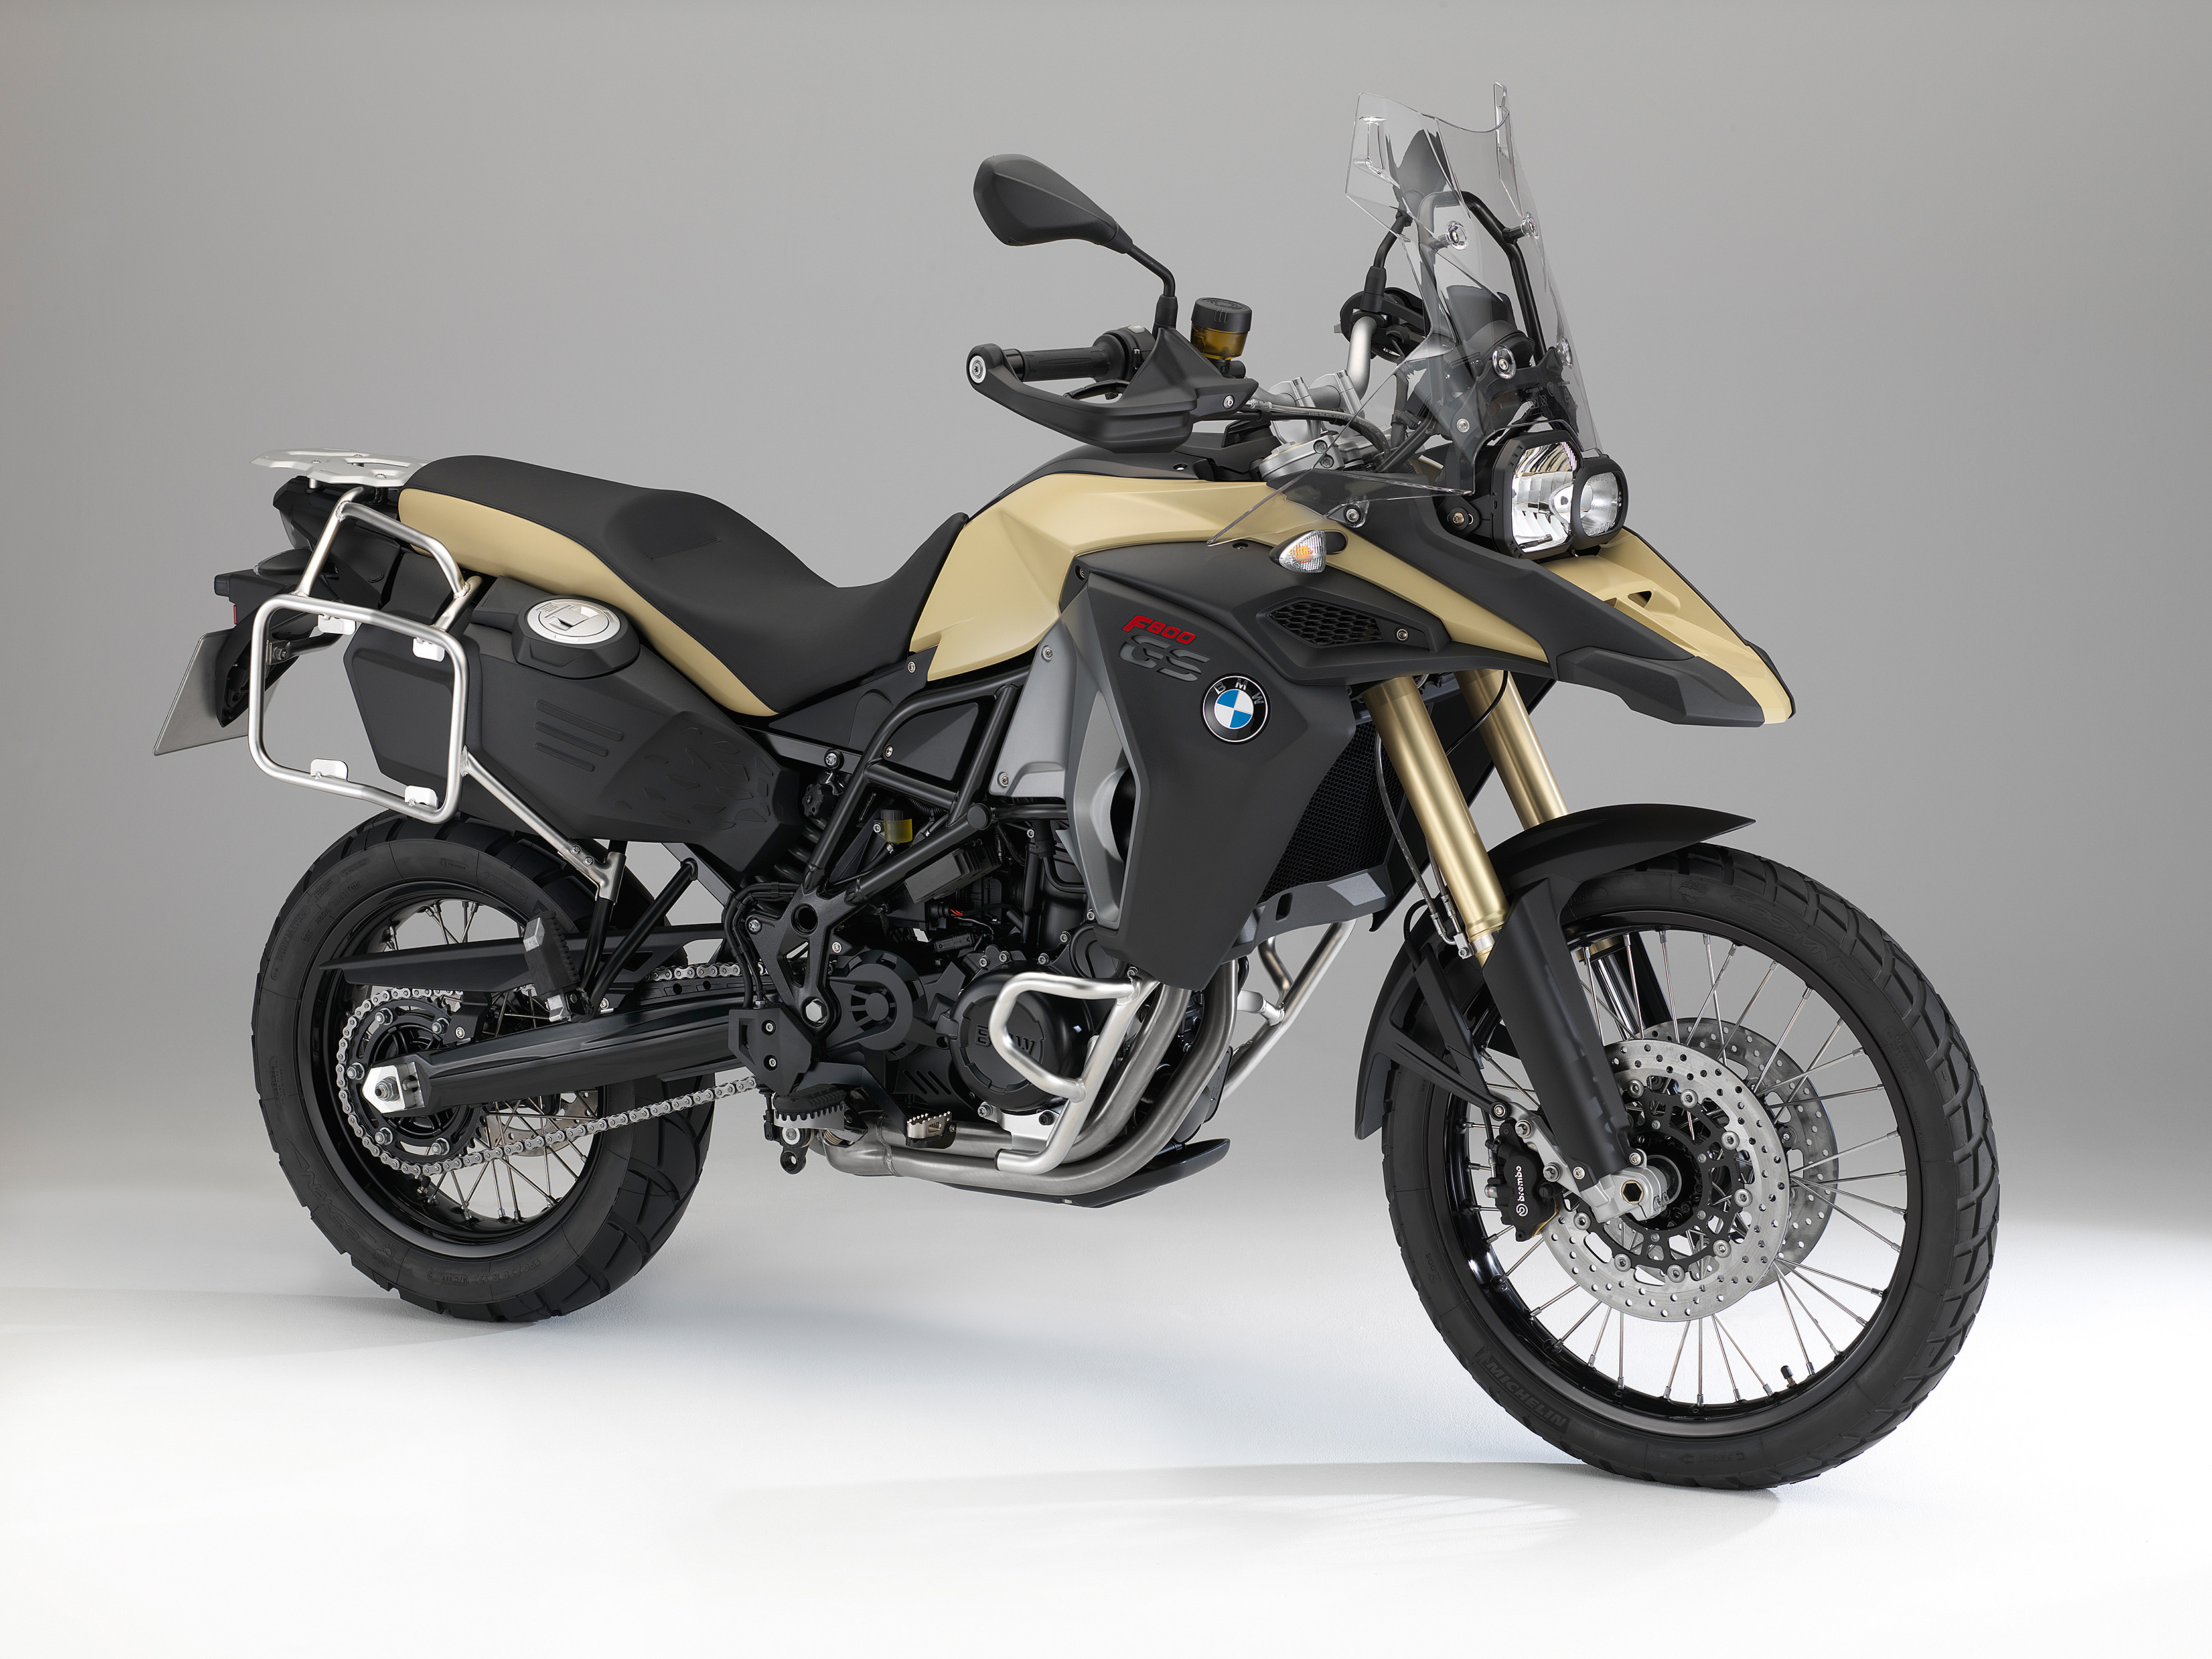 die bmw f800gs adventure der kleine bruder der bmw r1200gs. Black Bedroom Furniture Sets. Home Design Ideas